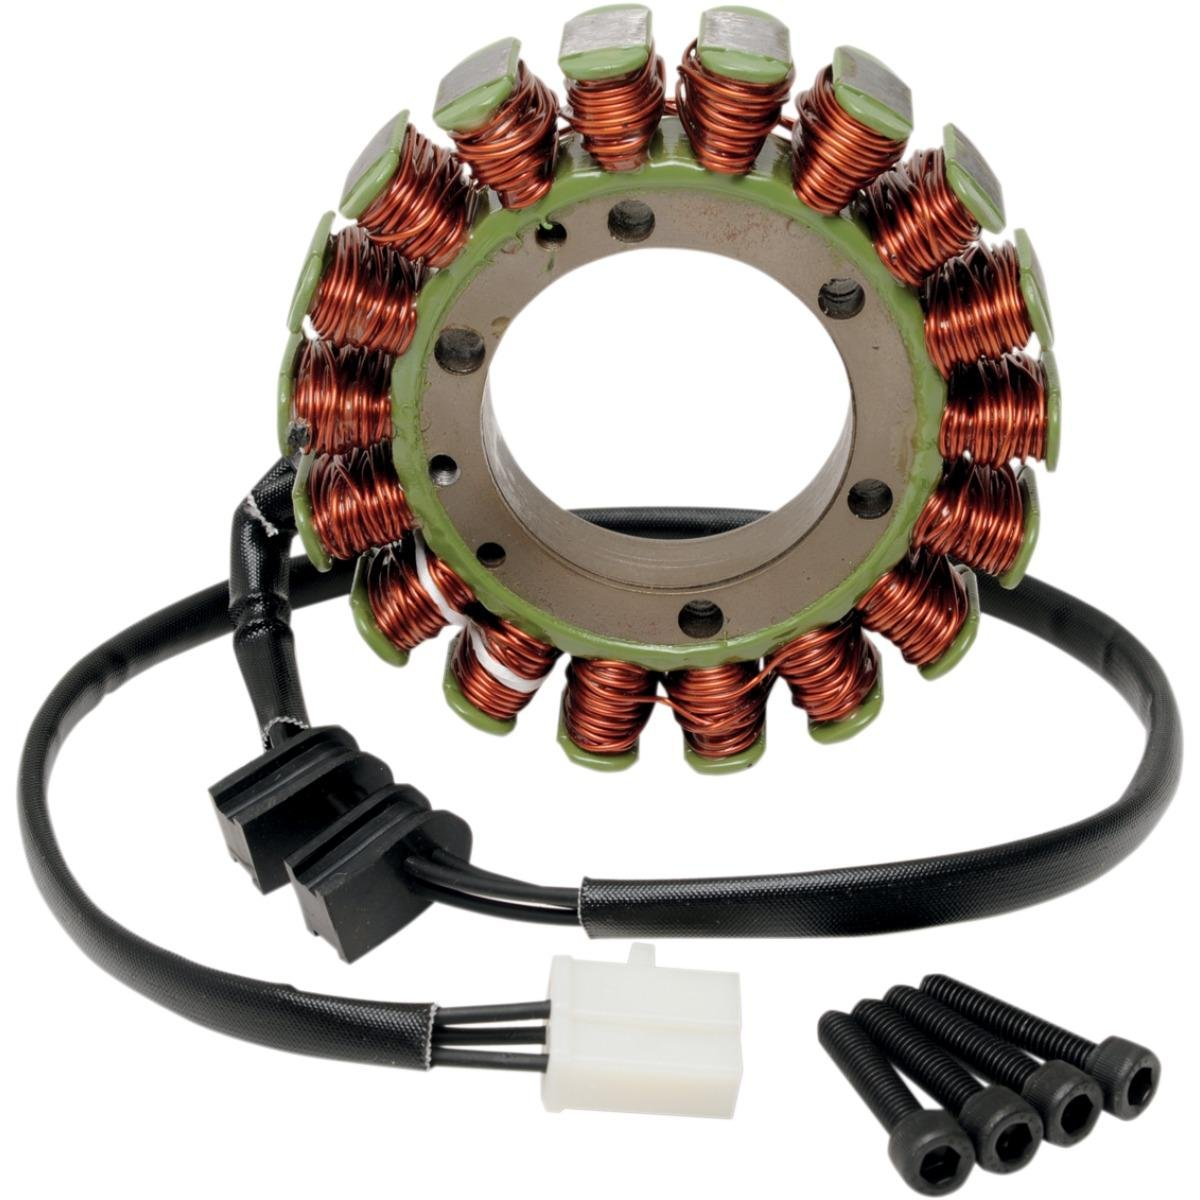 Ricks Motorsport Electric Stator 21-315 LEPAZA55360